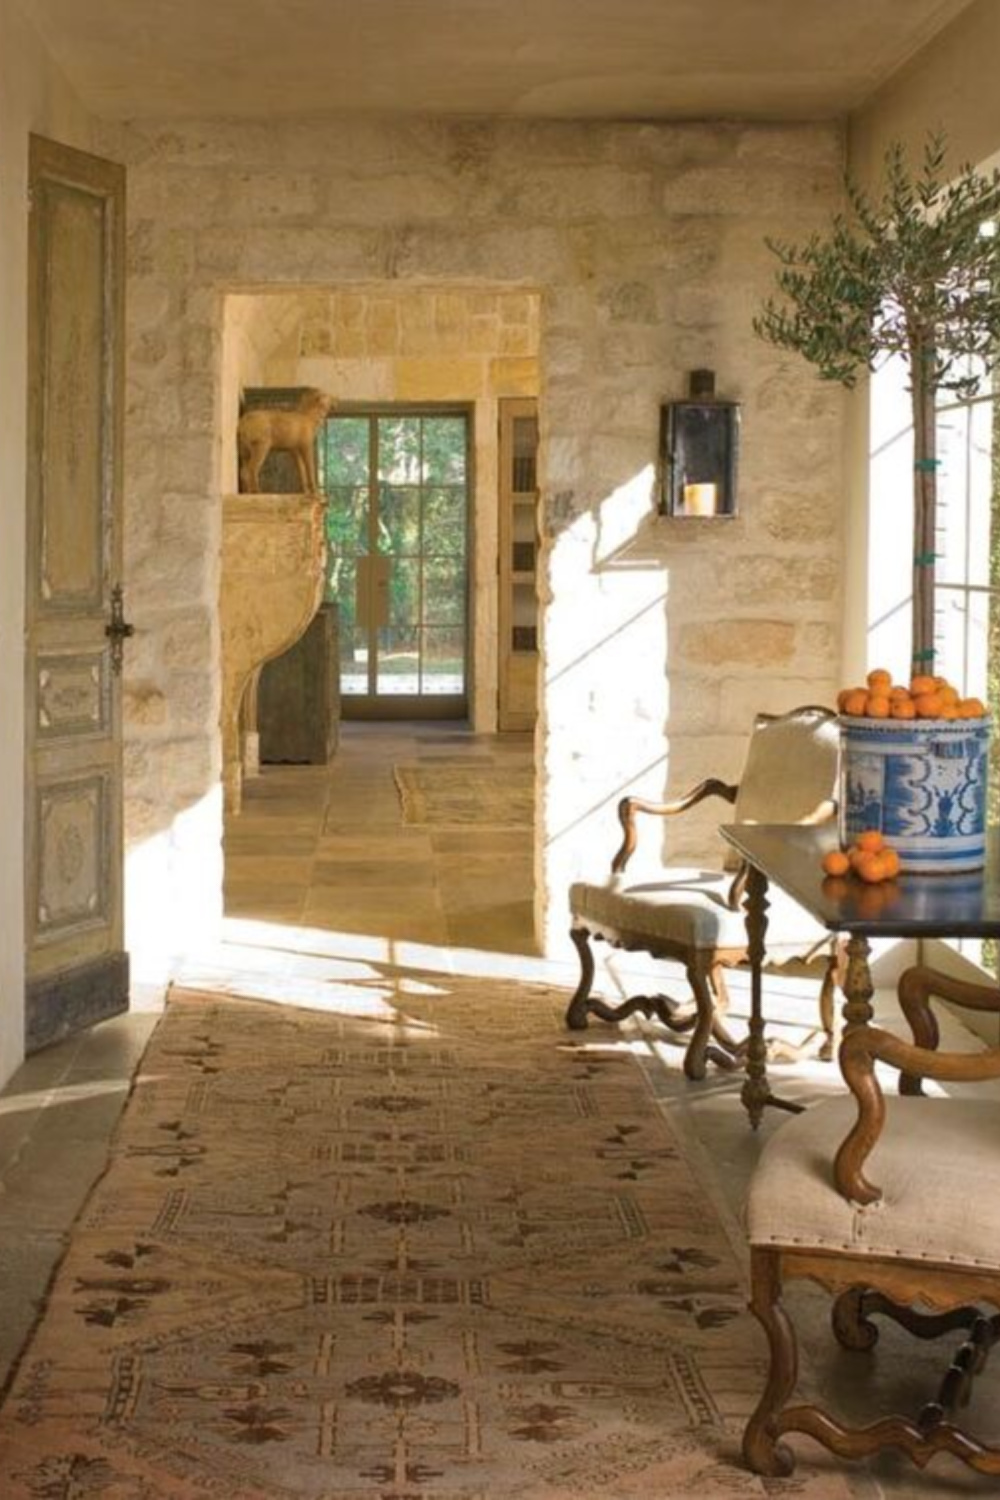 Chateau Domingue Timeless European Elegance and French farmhouse style converge in this house tour of founder Ruth Gay's home on Hello Lovely. Reclaimed stone, antique doors and mantels, and one of a kind architectural elements. #housetour #frenchcountry #frenchfarmhouse #europeanfarmhouse #chateaudomingue #rusticdecor #pamelapierce #elegantdecor #antiques